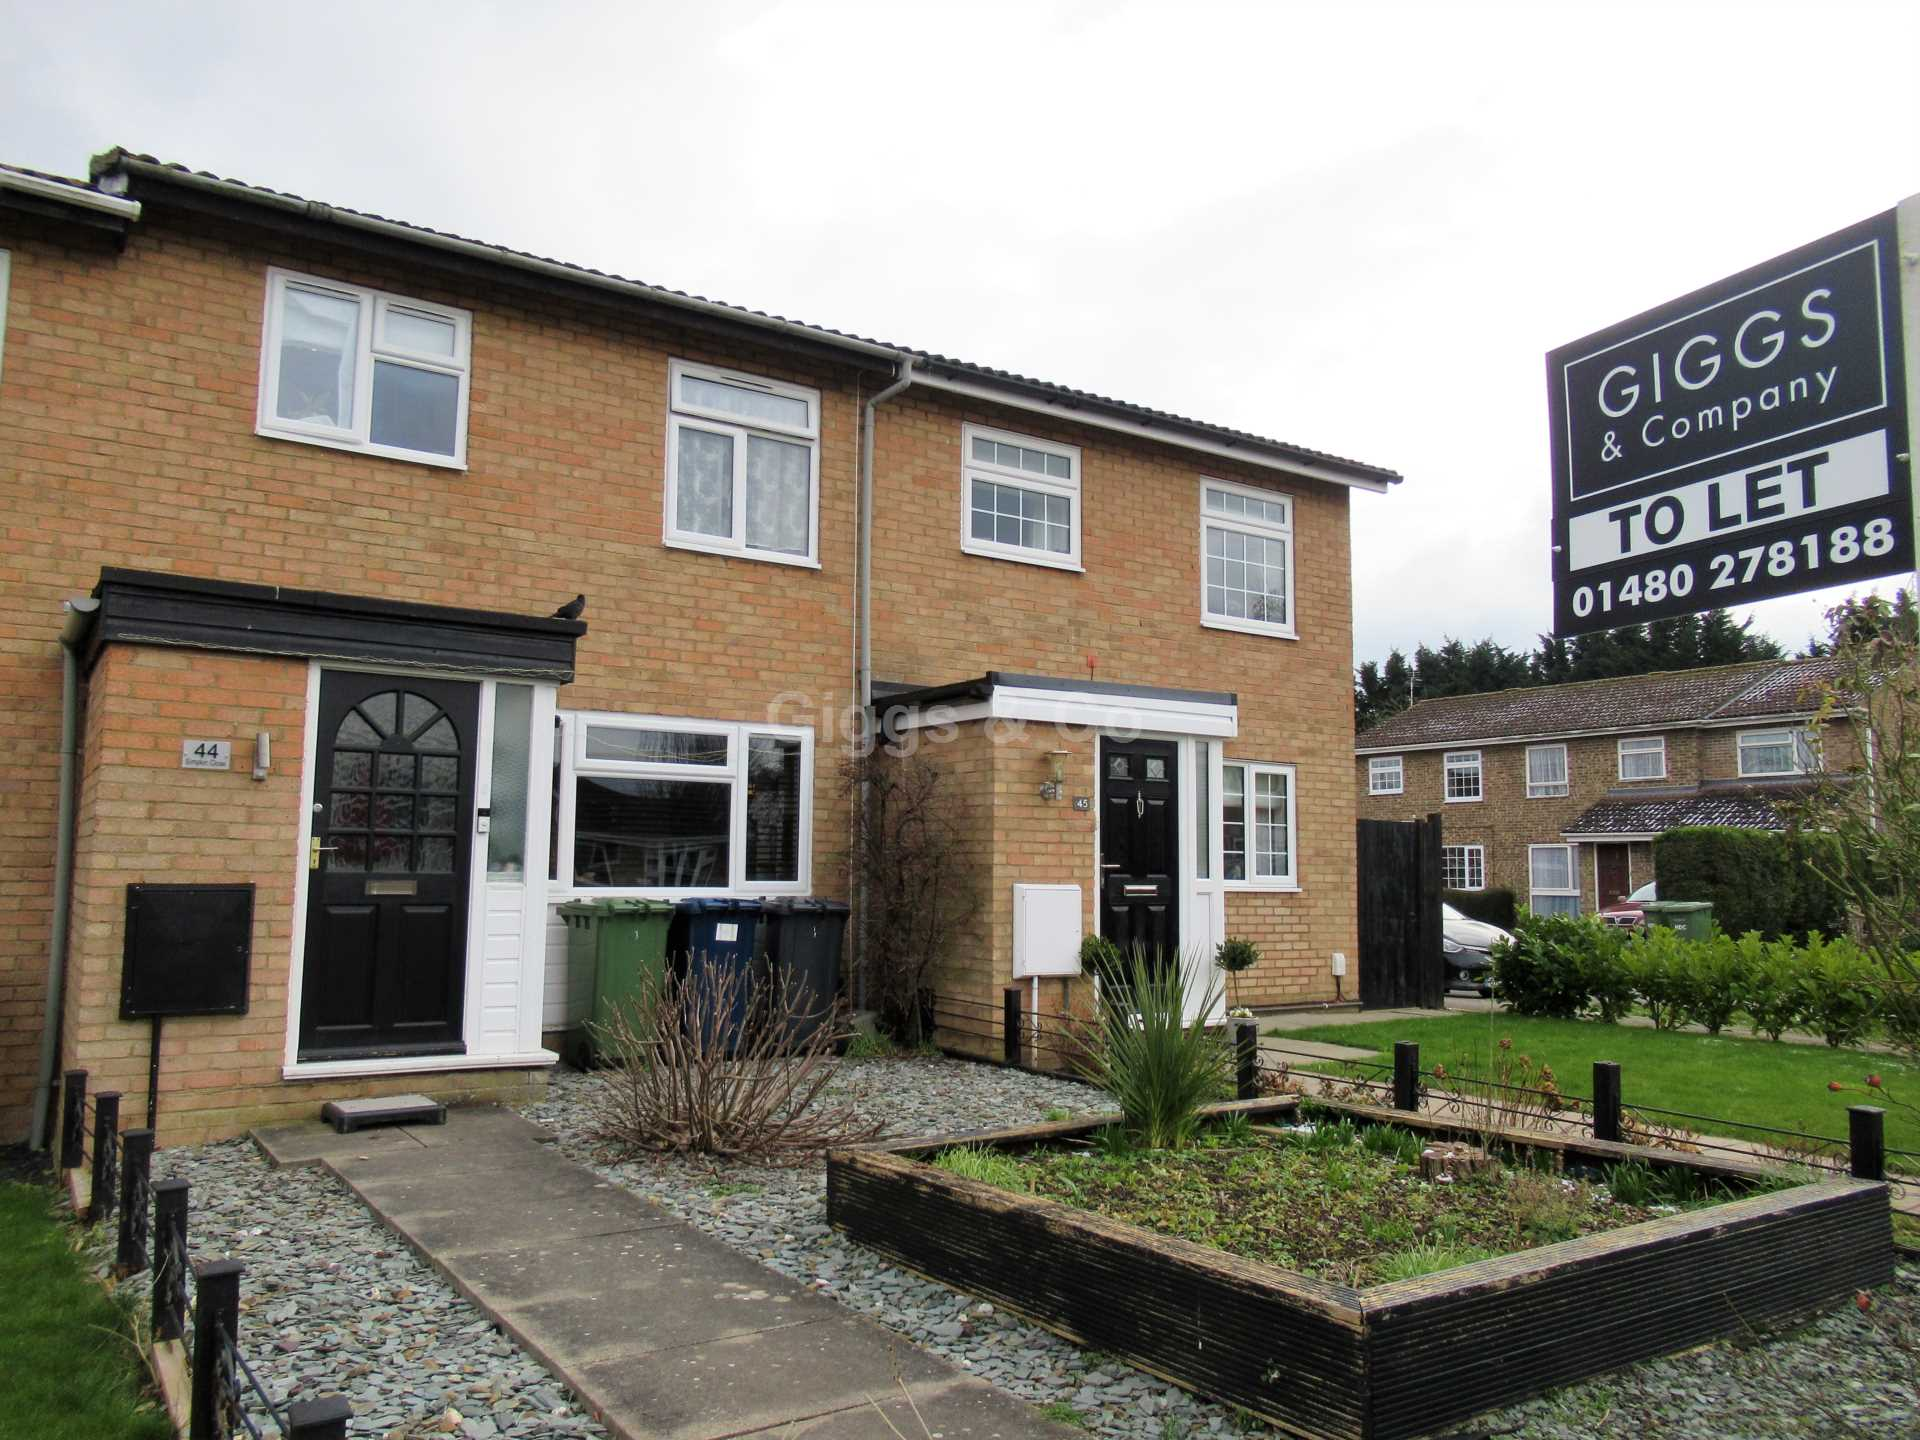 3 bed house to rent in Simpkin Close, Eaton Socon - Property Image 1